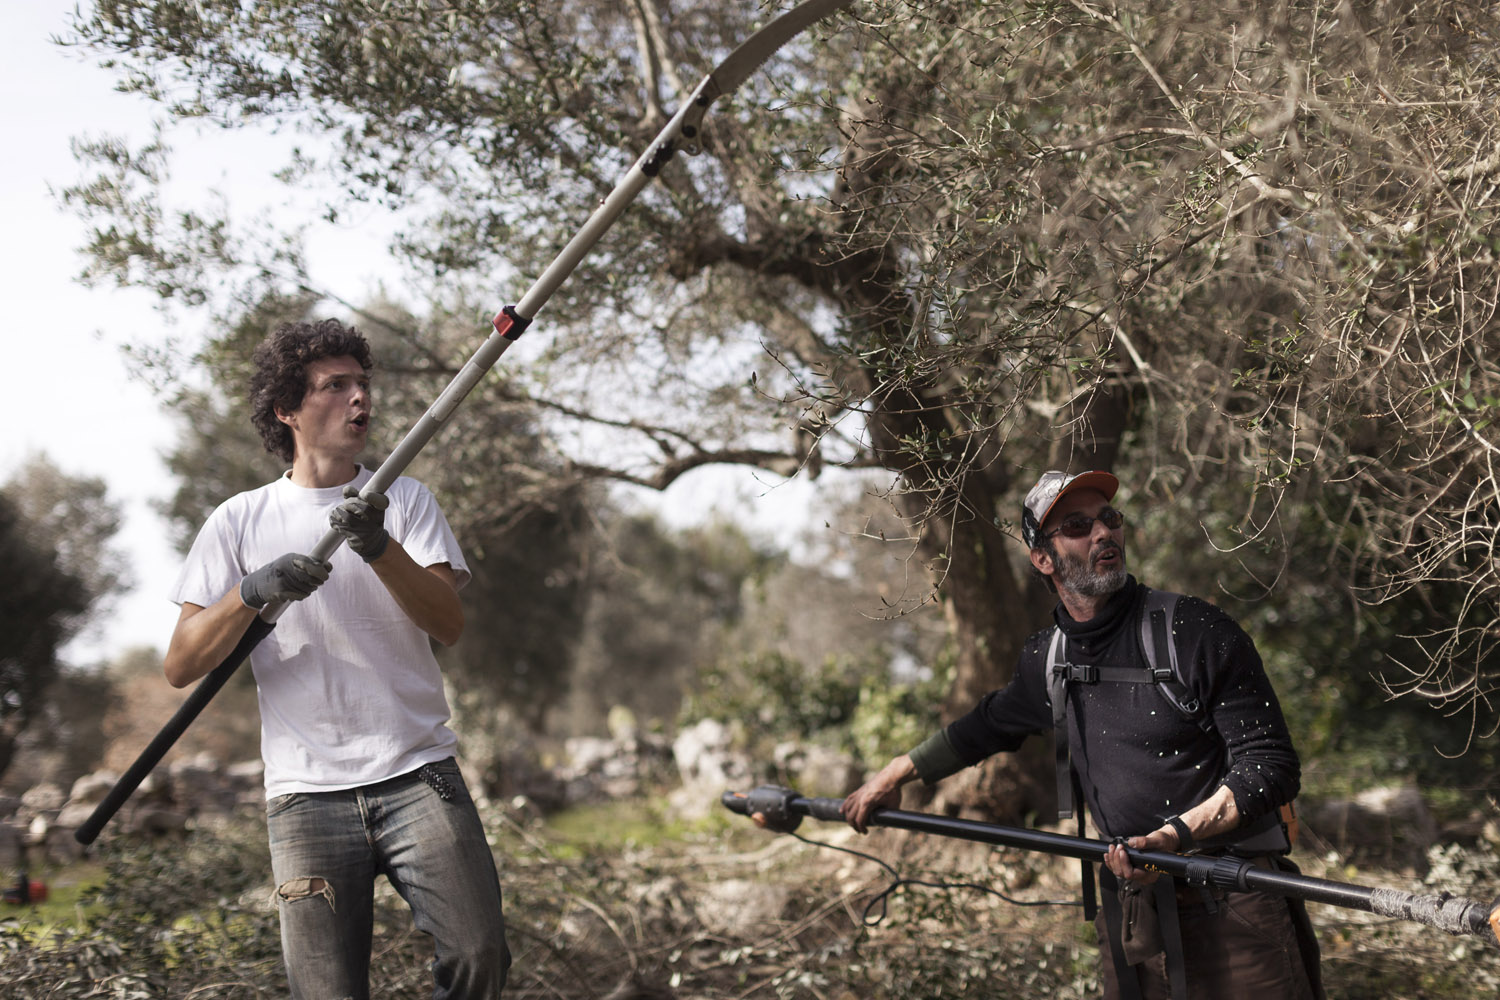 Pruning Mihnea's trees, in the countryside of Lecce. (2019)